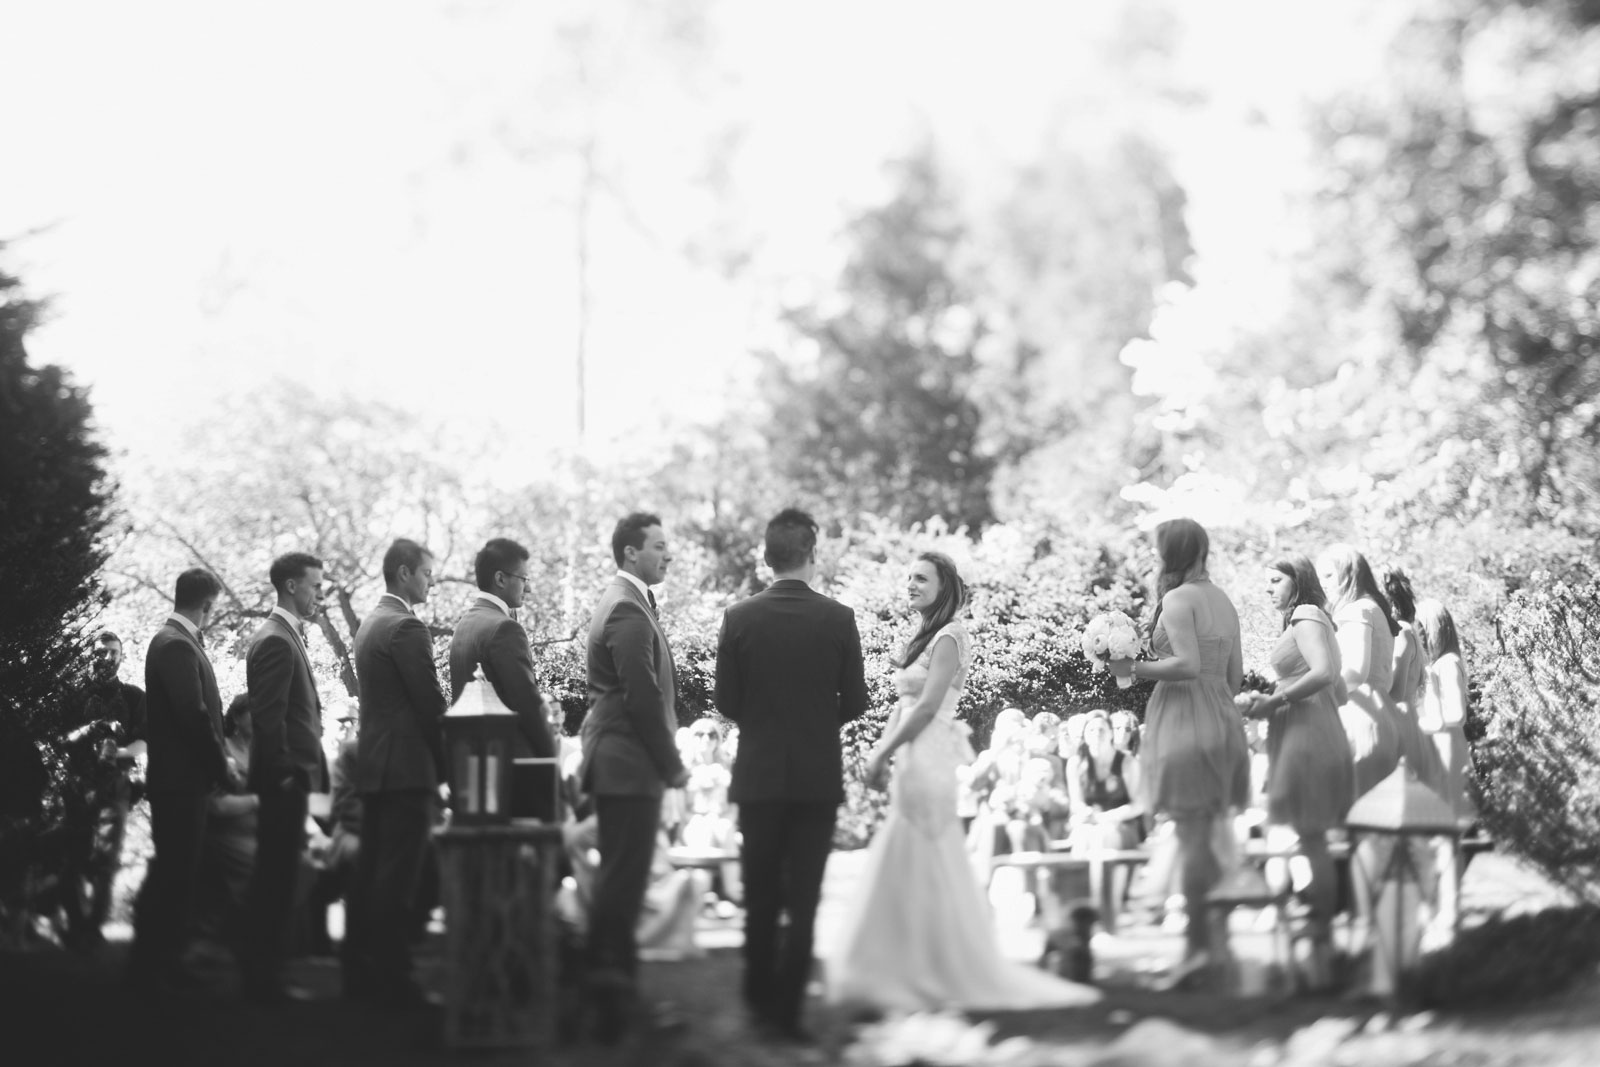 black and white shot of garden wedding ceremony from behind with tilt shift soft focus